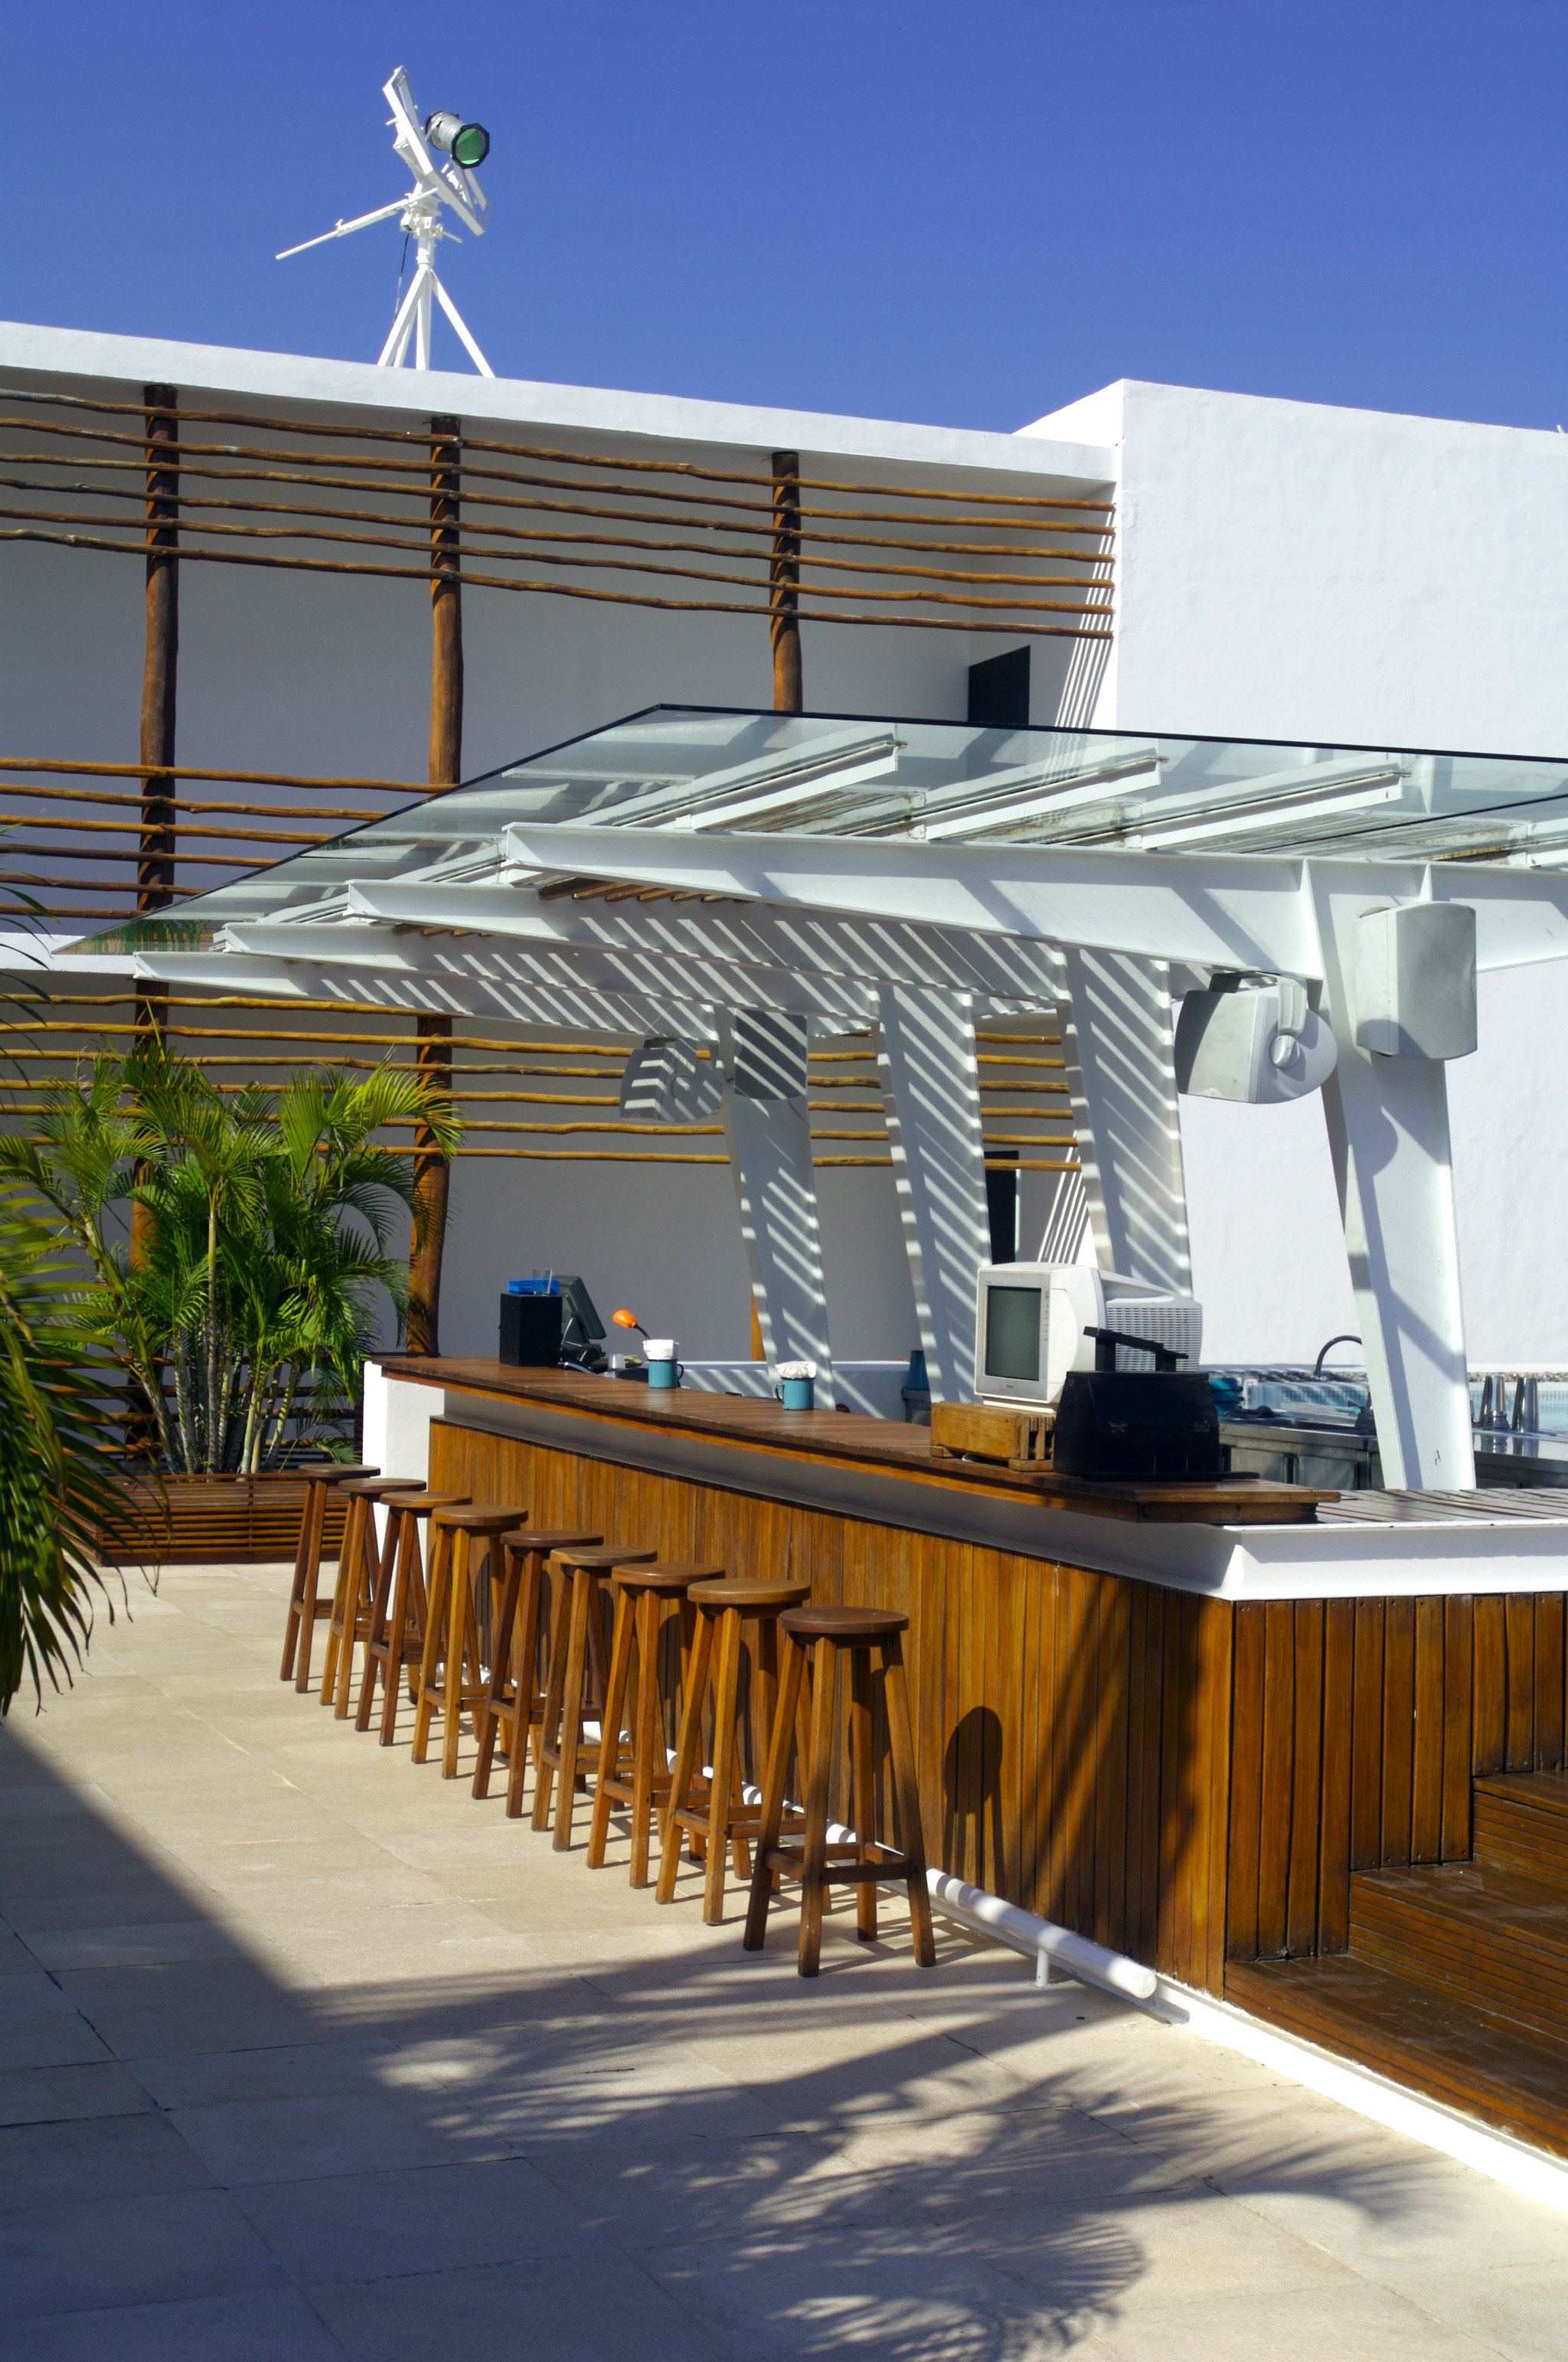 Adult-only Bar Exterior Modern structure Architecture house walkway dock Resort boardwalk outdoor structure